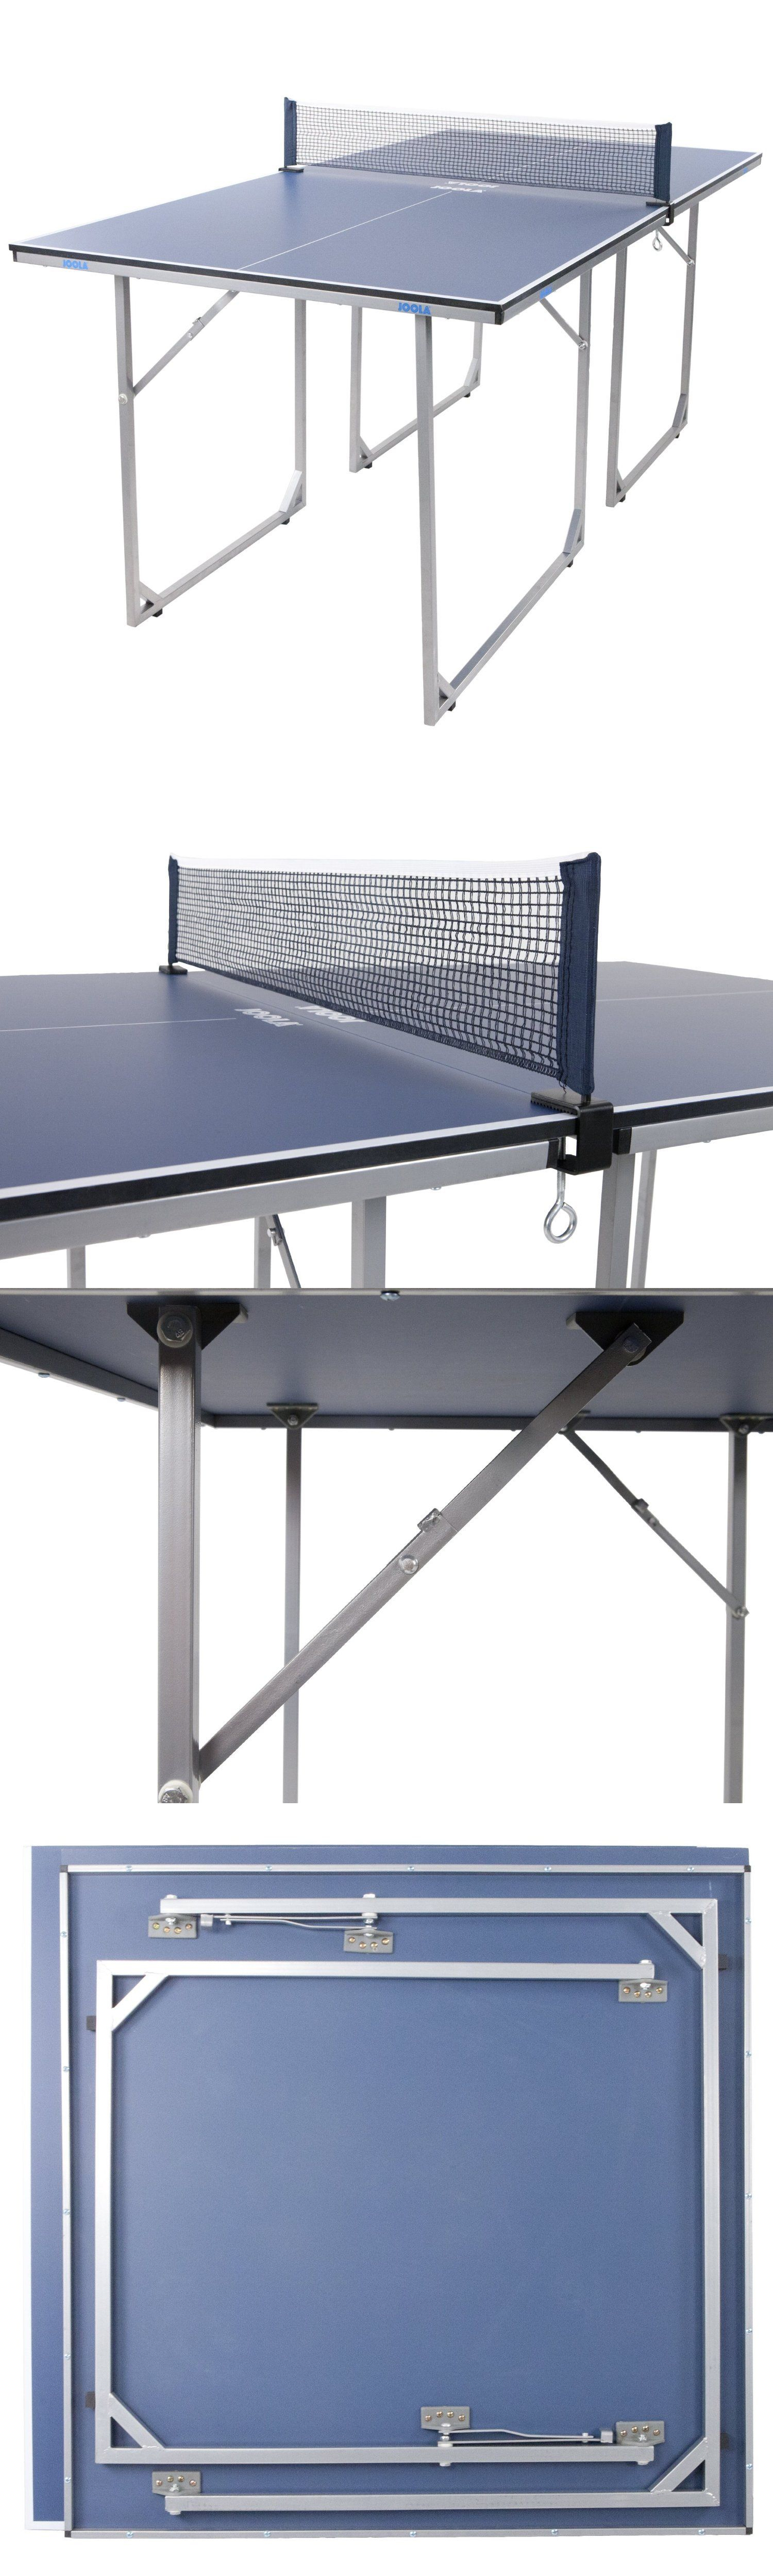 Tables 97075: Conversion Ping Pong Table Tennis Easy Folding Midsize Indoor  Outdoor Fun Play